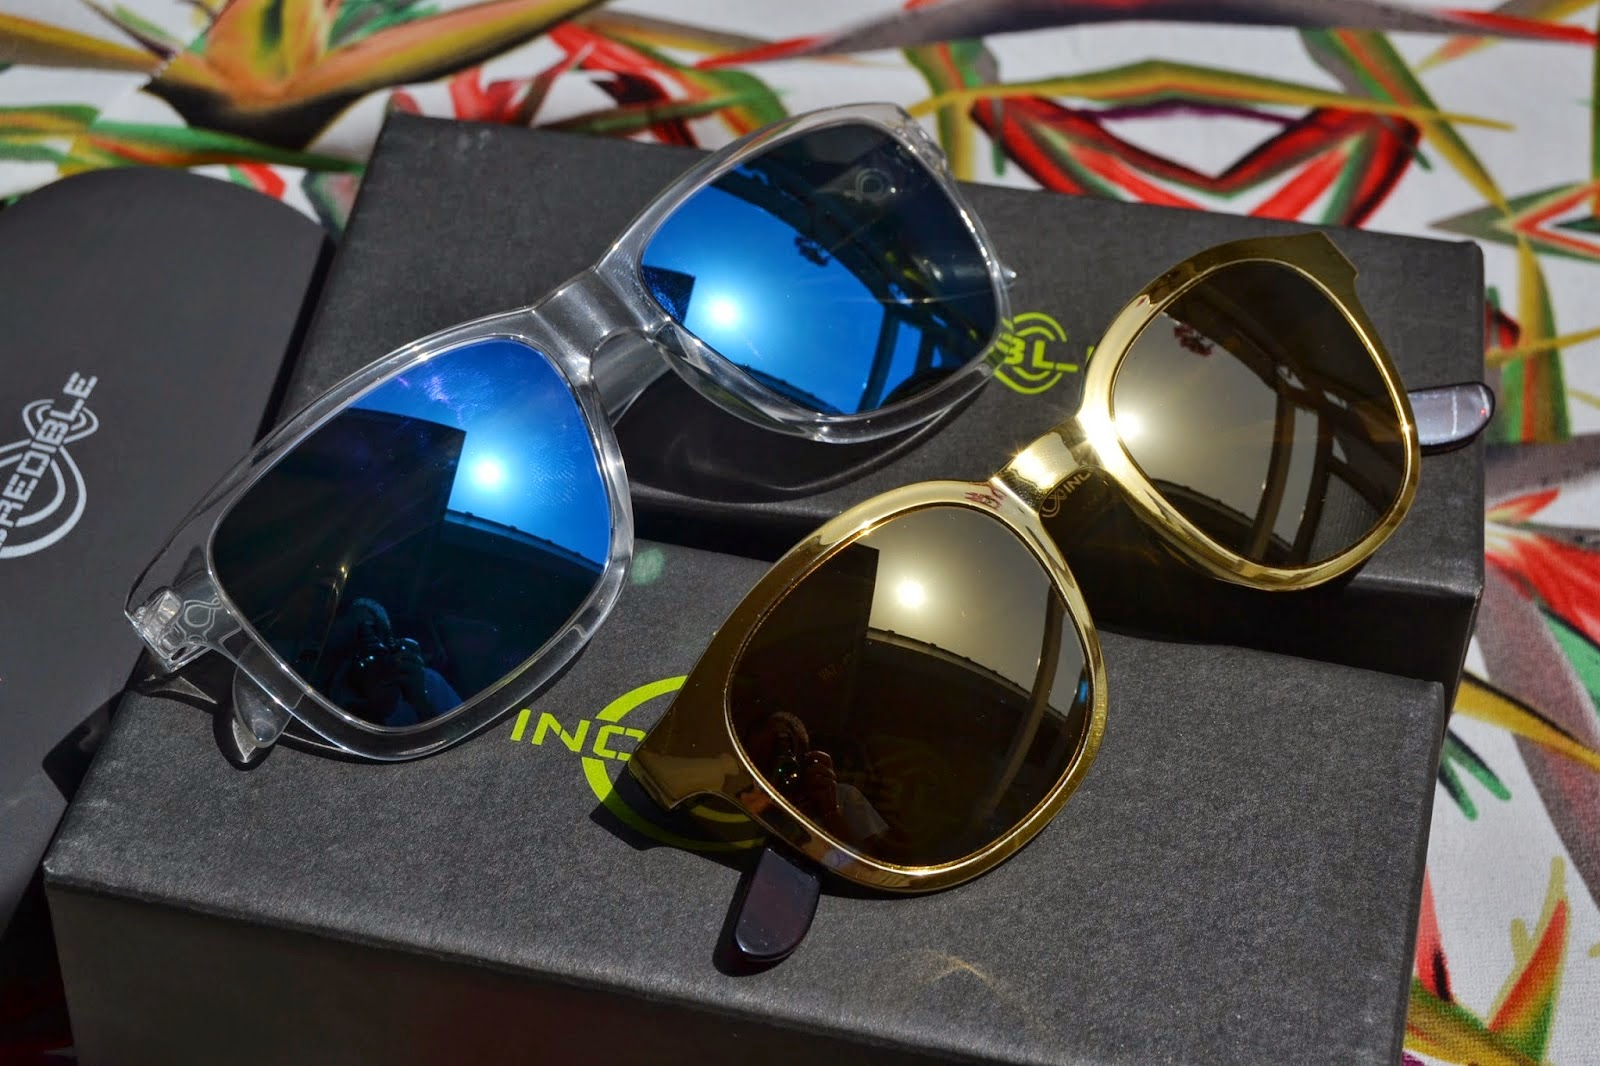 http://www.syriouslyinfashion.com/2014/07/incredible-real-italian-sunglasses.html